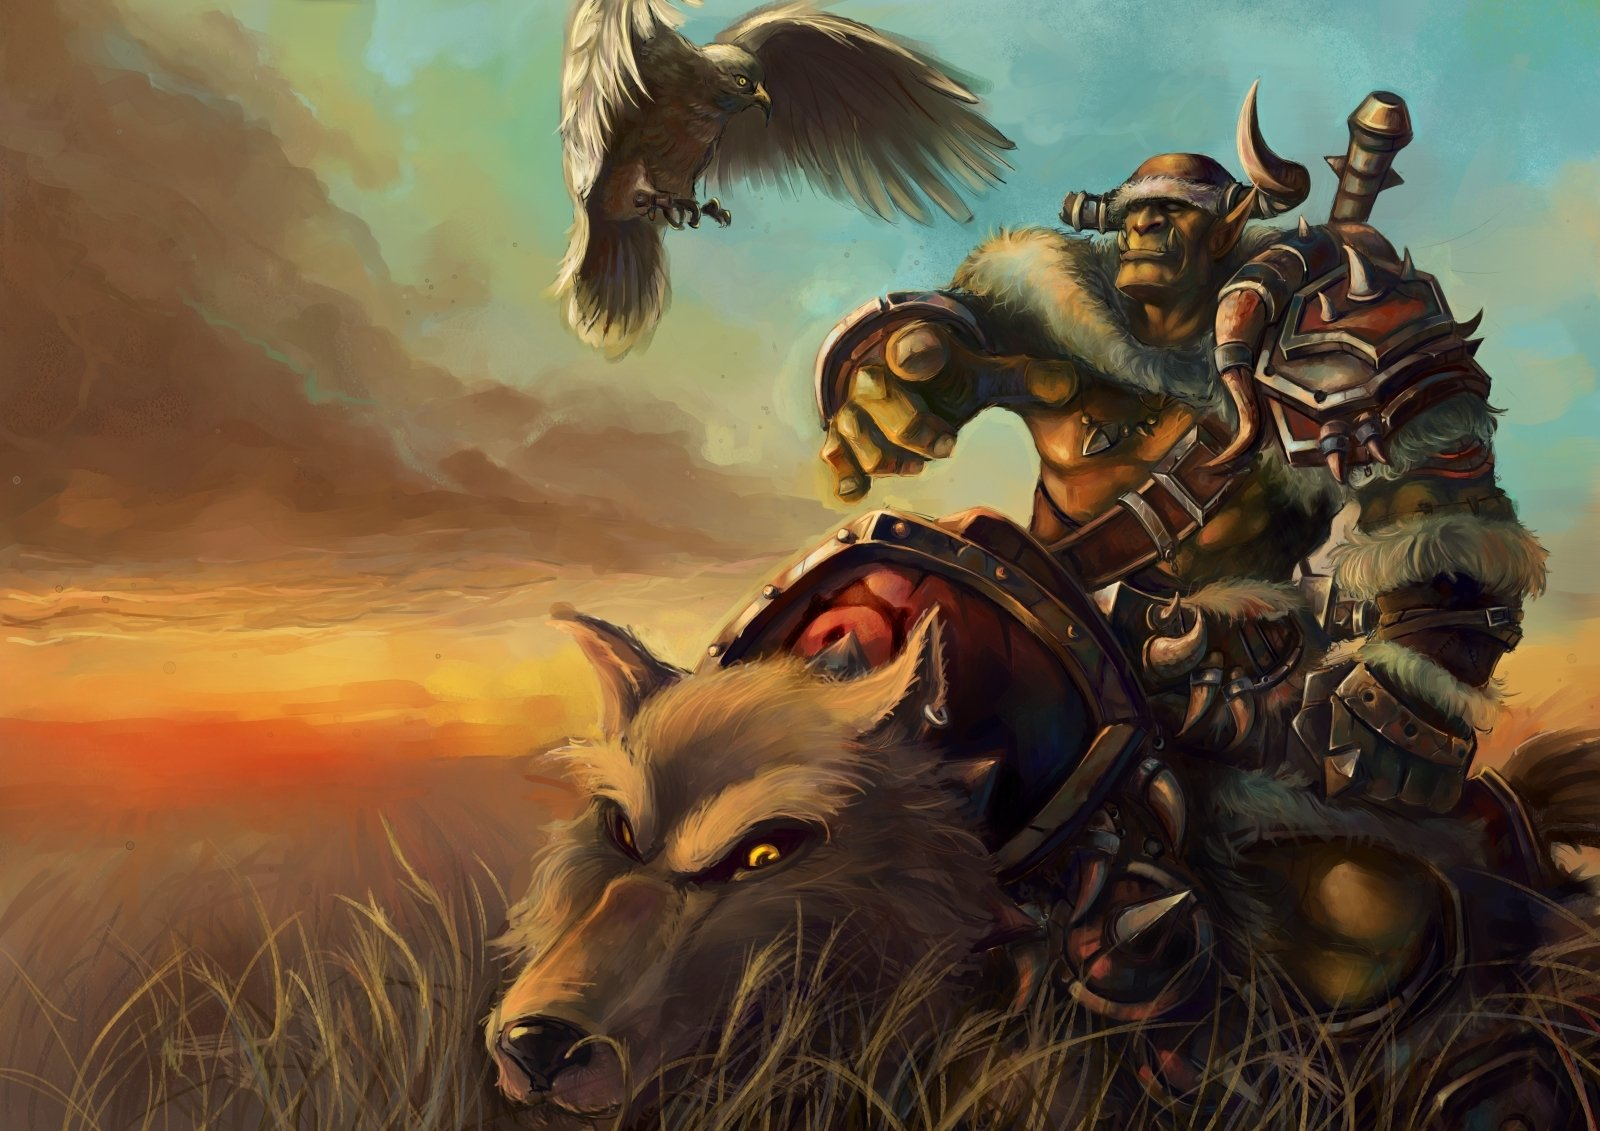 Orc Rider Wallpaper and Background Image | 1600x1131 | ID ...